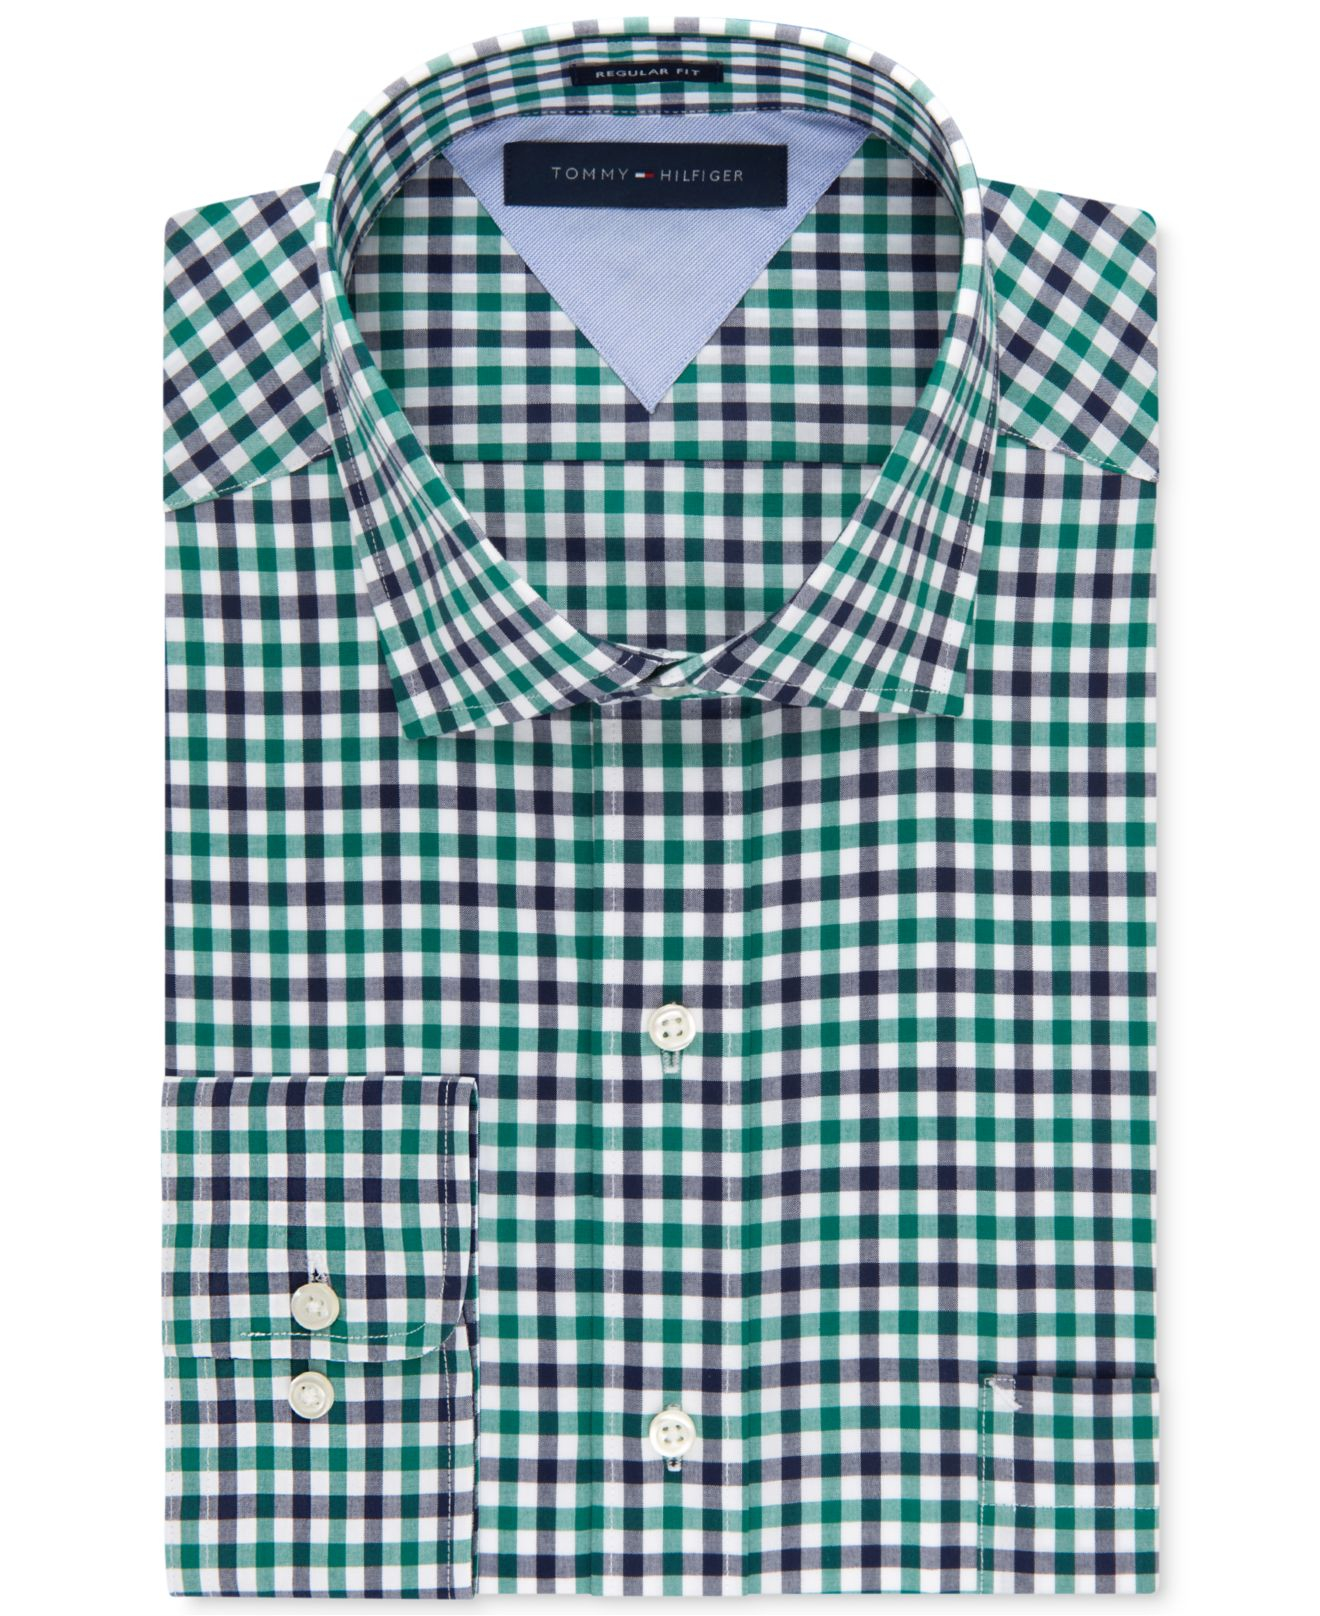 tommy hilfiger classic fit green and blue multi gingham